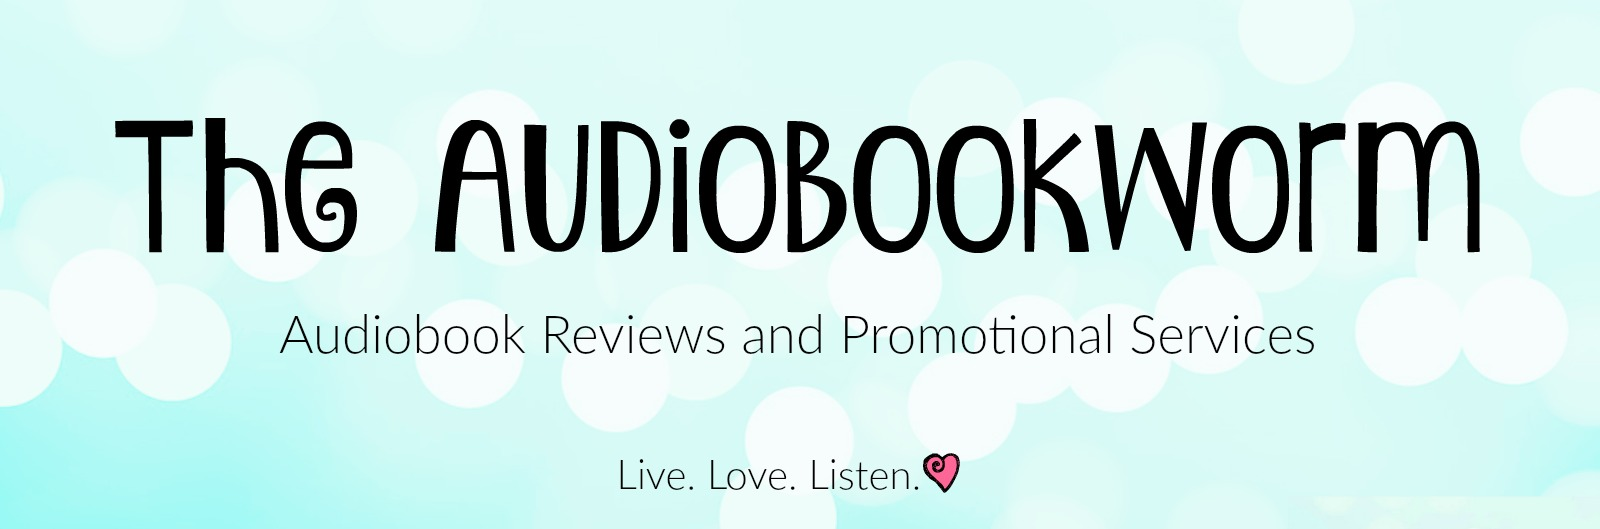 Tabled Audiobooks: What's on my table?